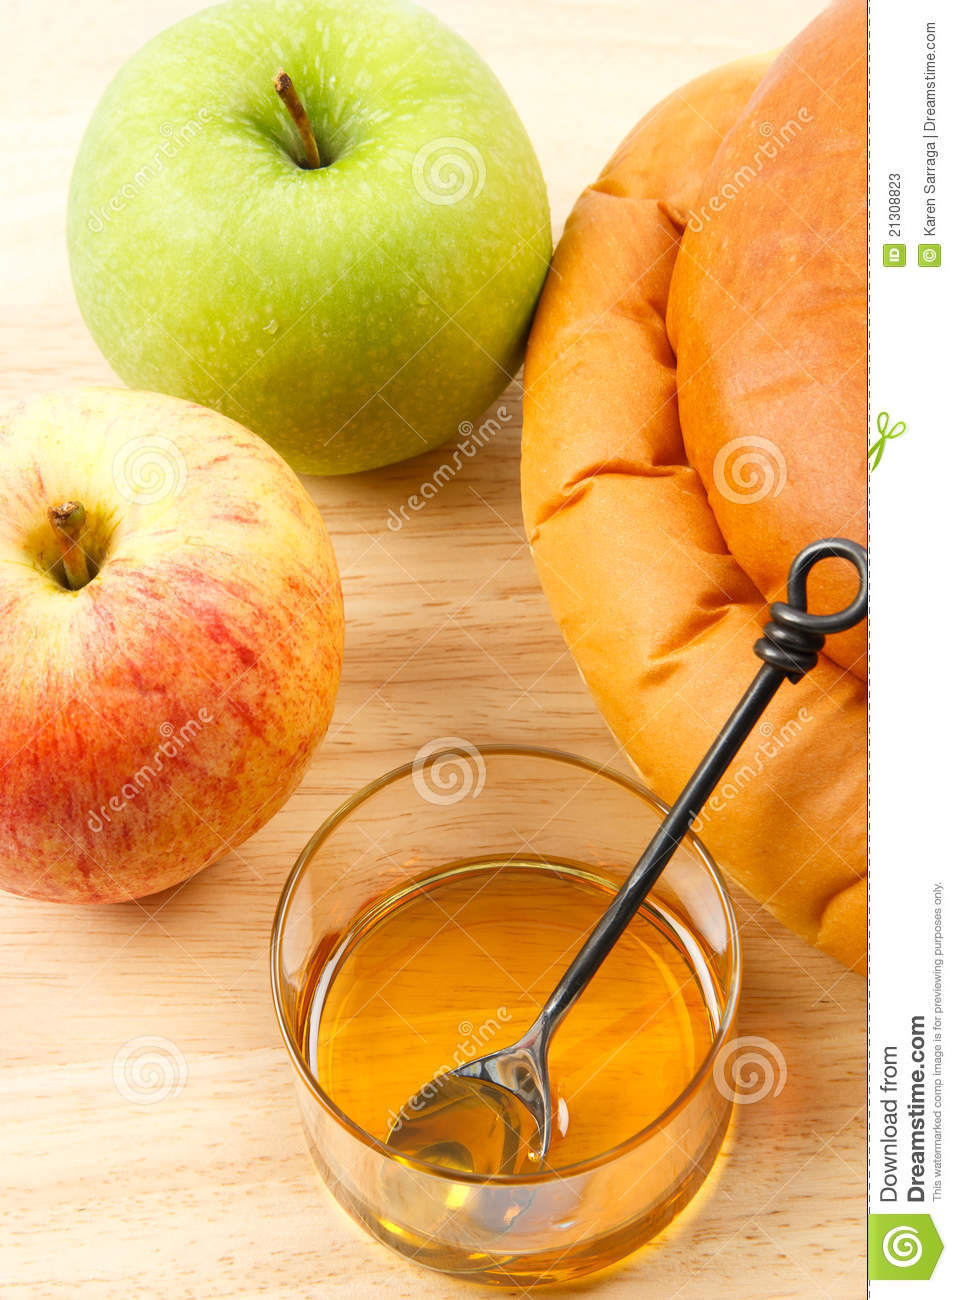 Apples and Honey and Challah Bread are traditional symbols shared at ...